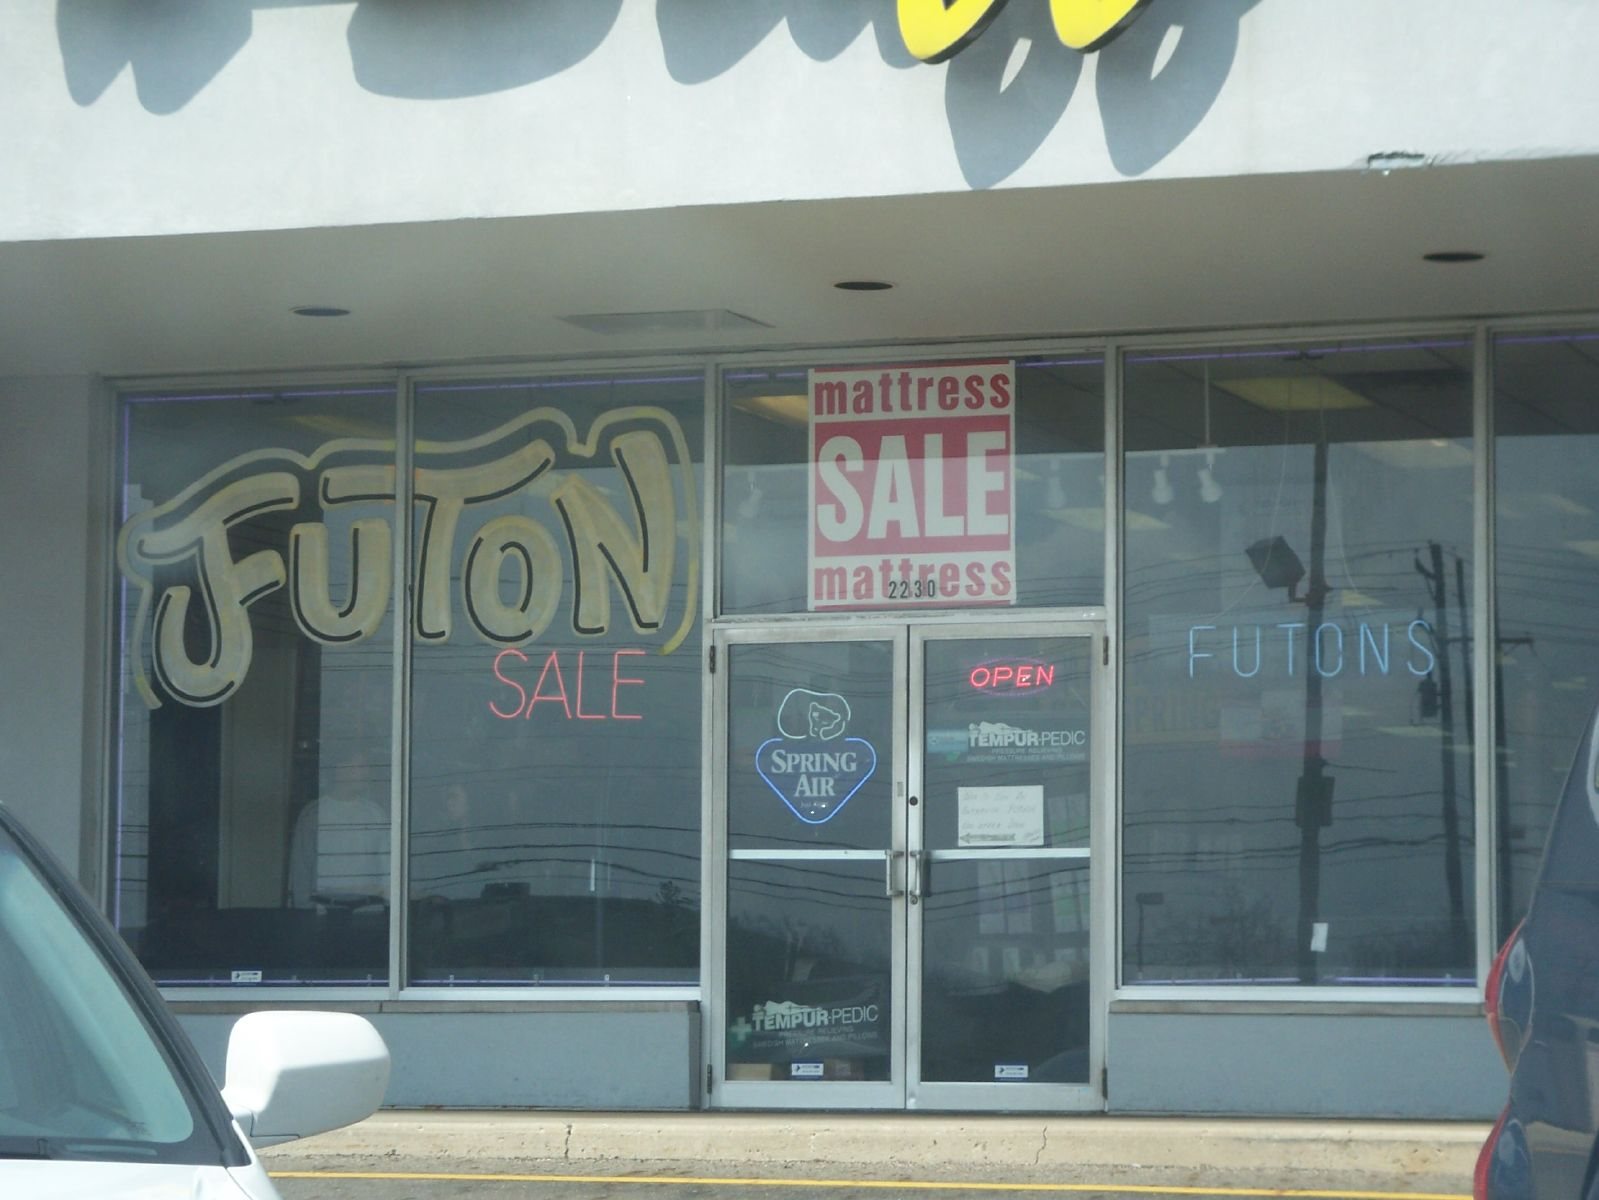 Futon i finally visited waterbeds n 39 stuff it is an for Waterbeds and stuff